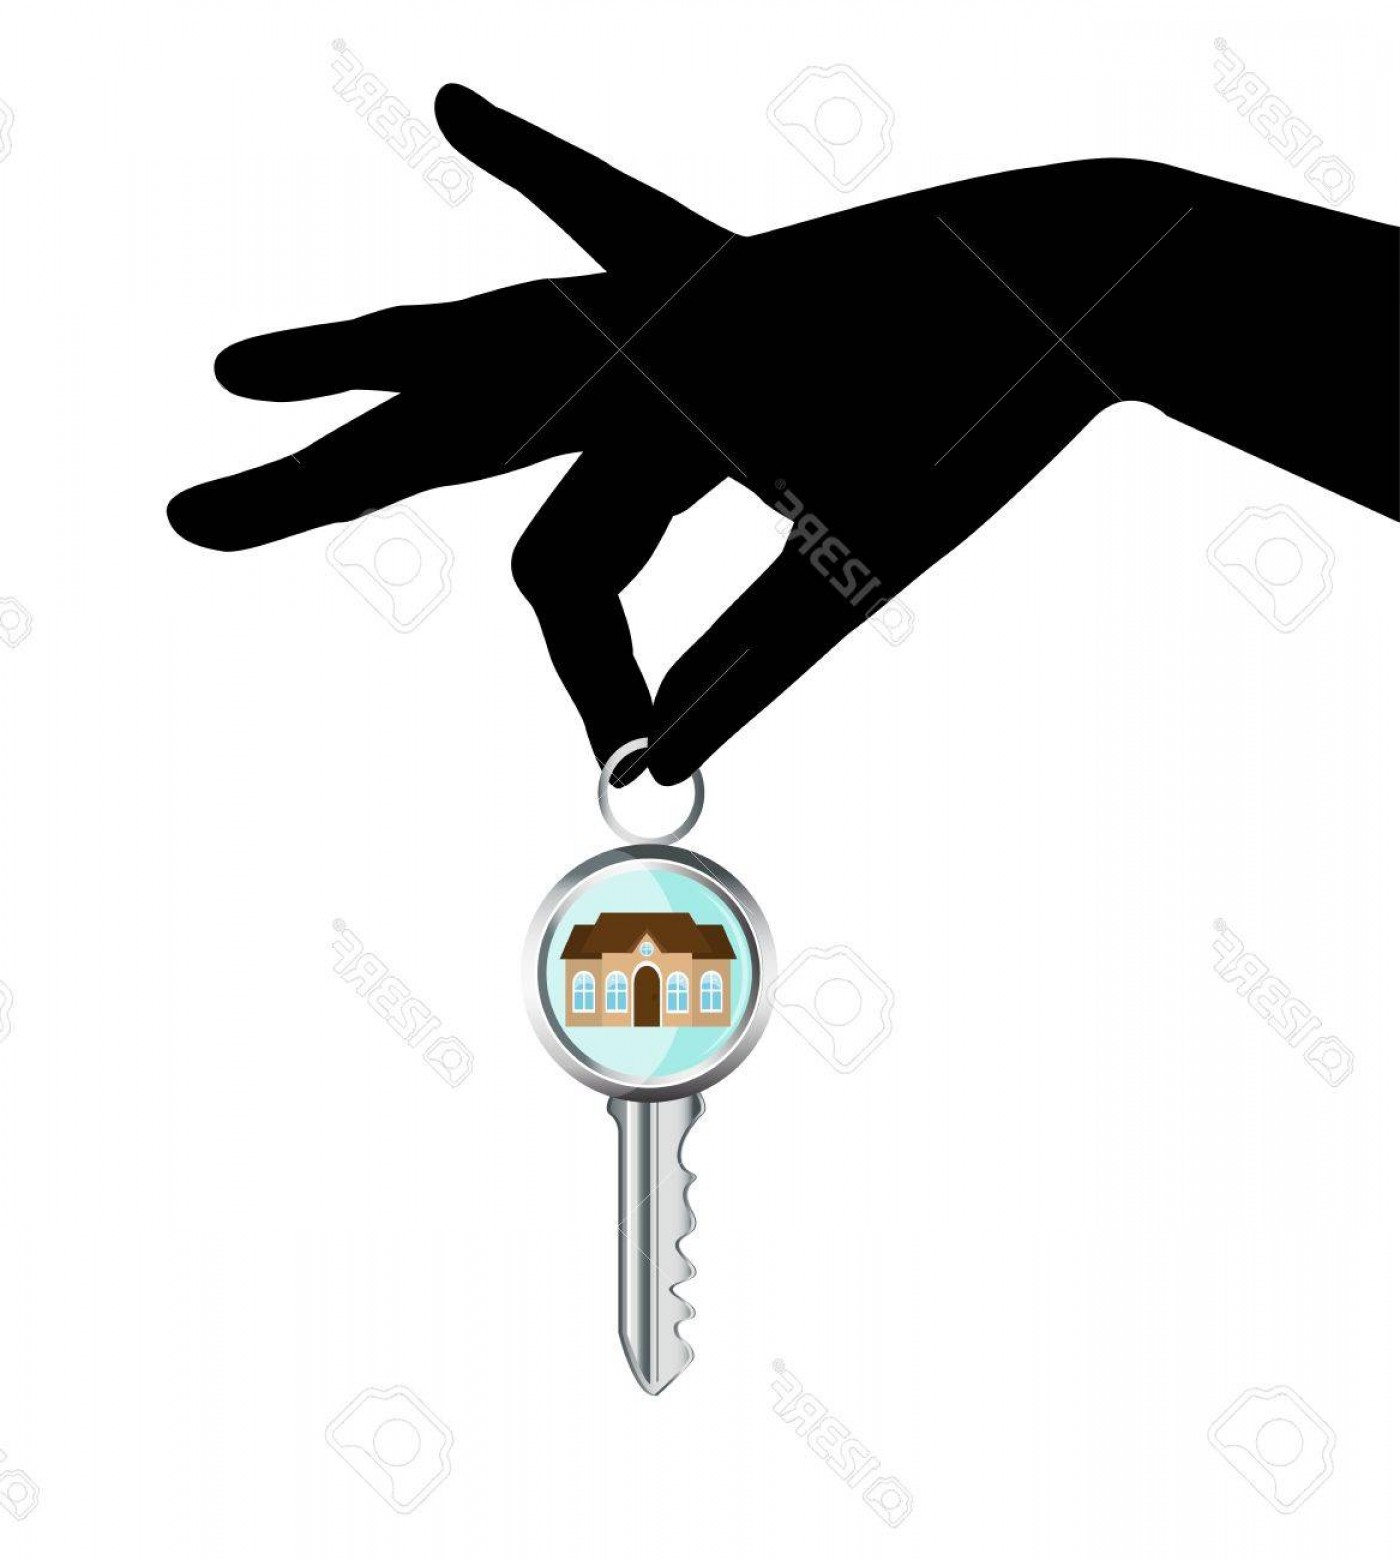 Hand With Ring Silhouette Vector: Photoblack Silhouette Of A Human Hand Holding A House Key